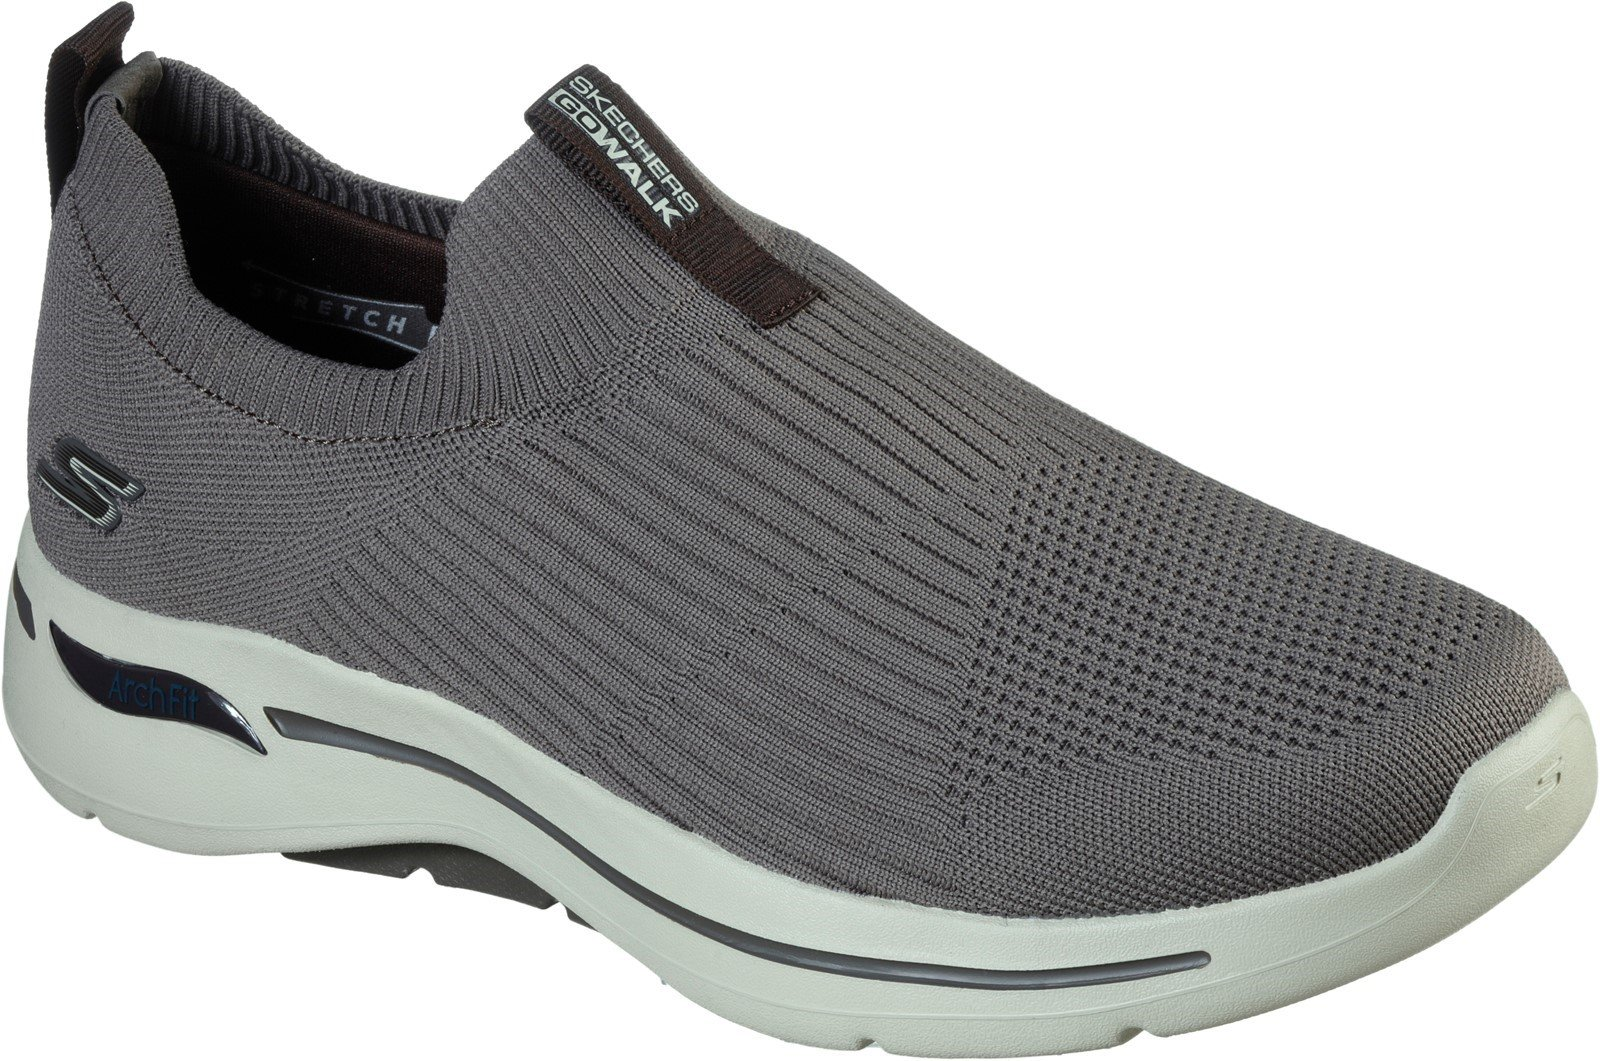 Skechers Men's Go Walk Arch Fit Slip On Trainer Various Colours 32203 - Taupe/Brown 6